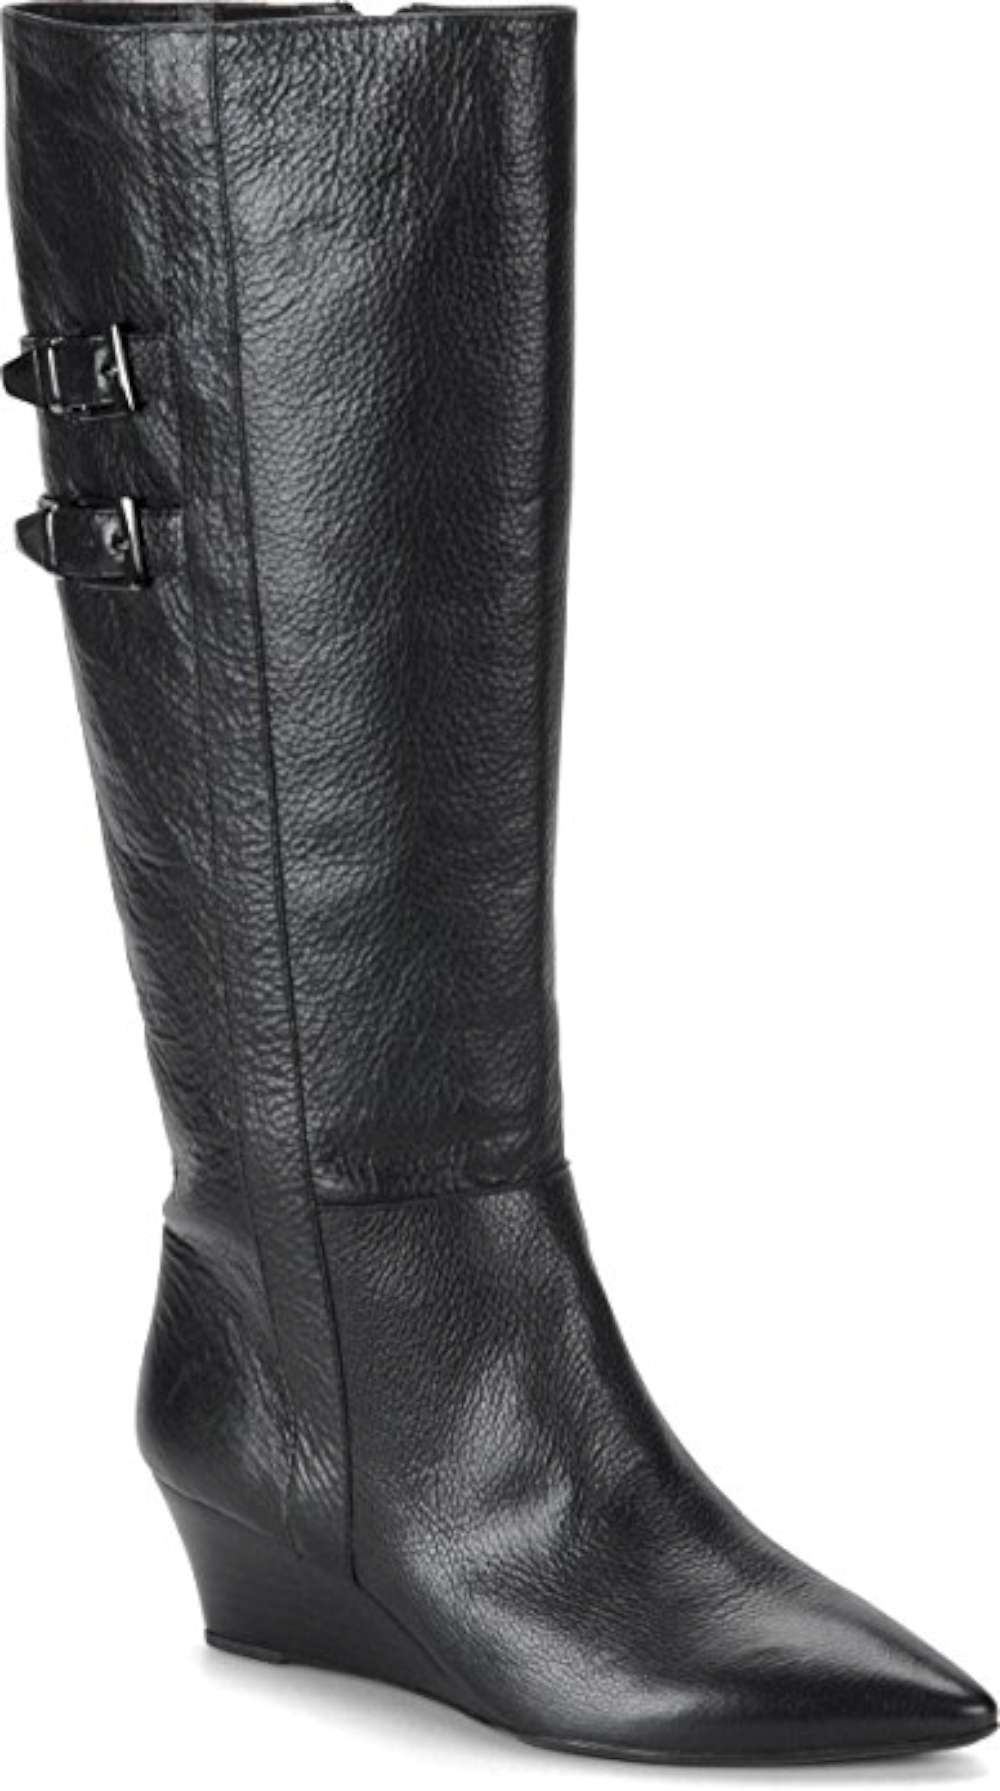 Sofft Women's Annora Boots by Sofft